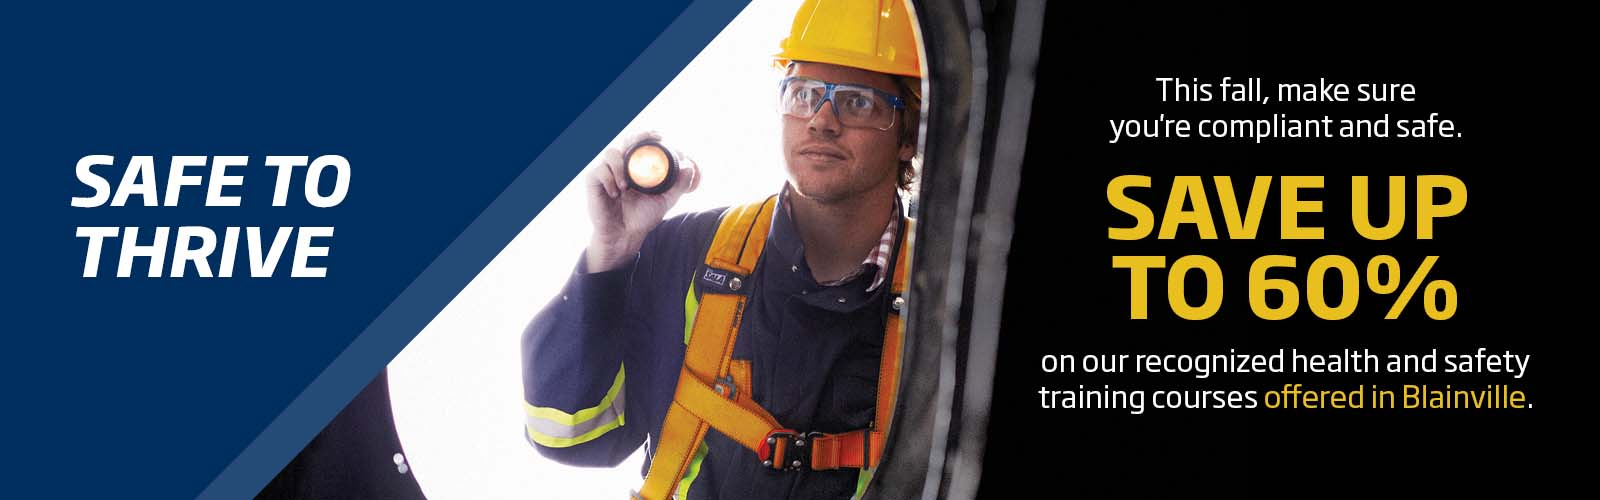 This fall, make sure you're compliant and safe. Save up to 60% on our recognized health and safety training courses offered in Blainville.